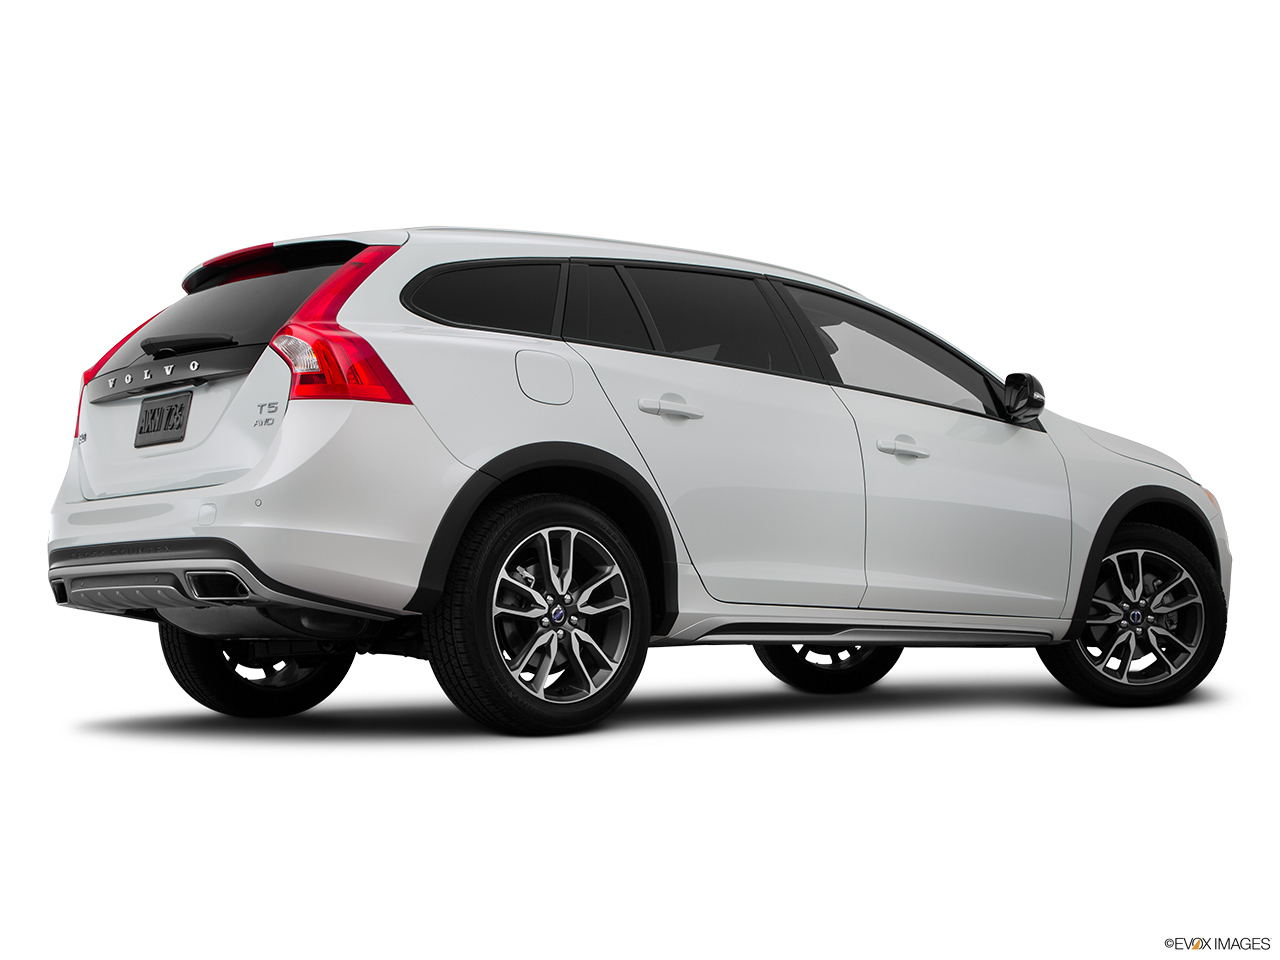 2015 Volvo V60 Cross Country T5 AWD Low/wide rear 5/8.